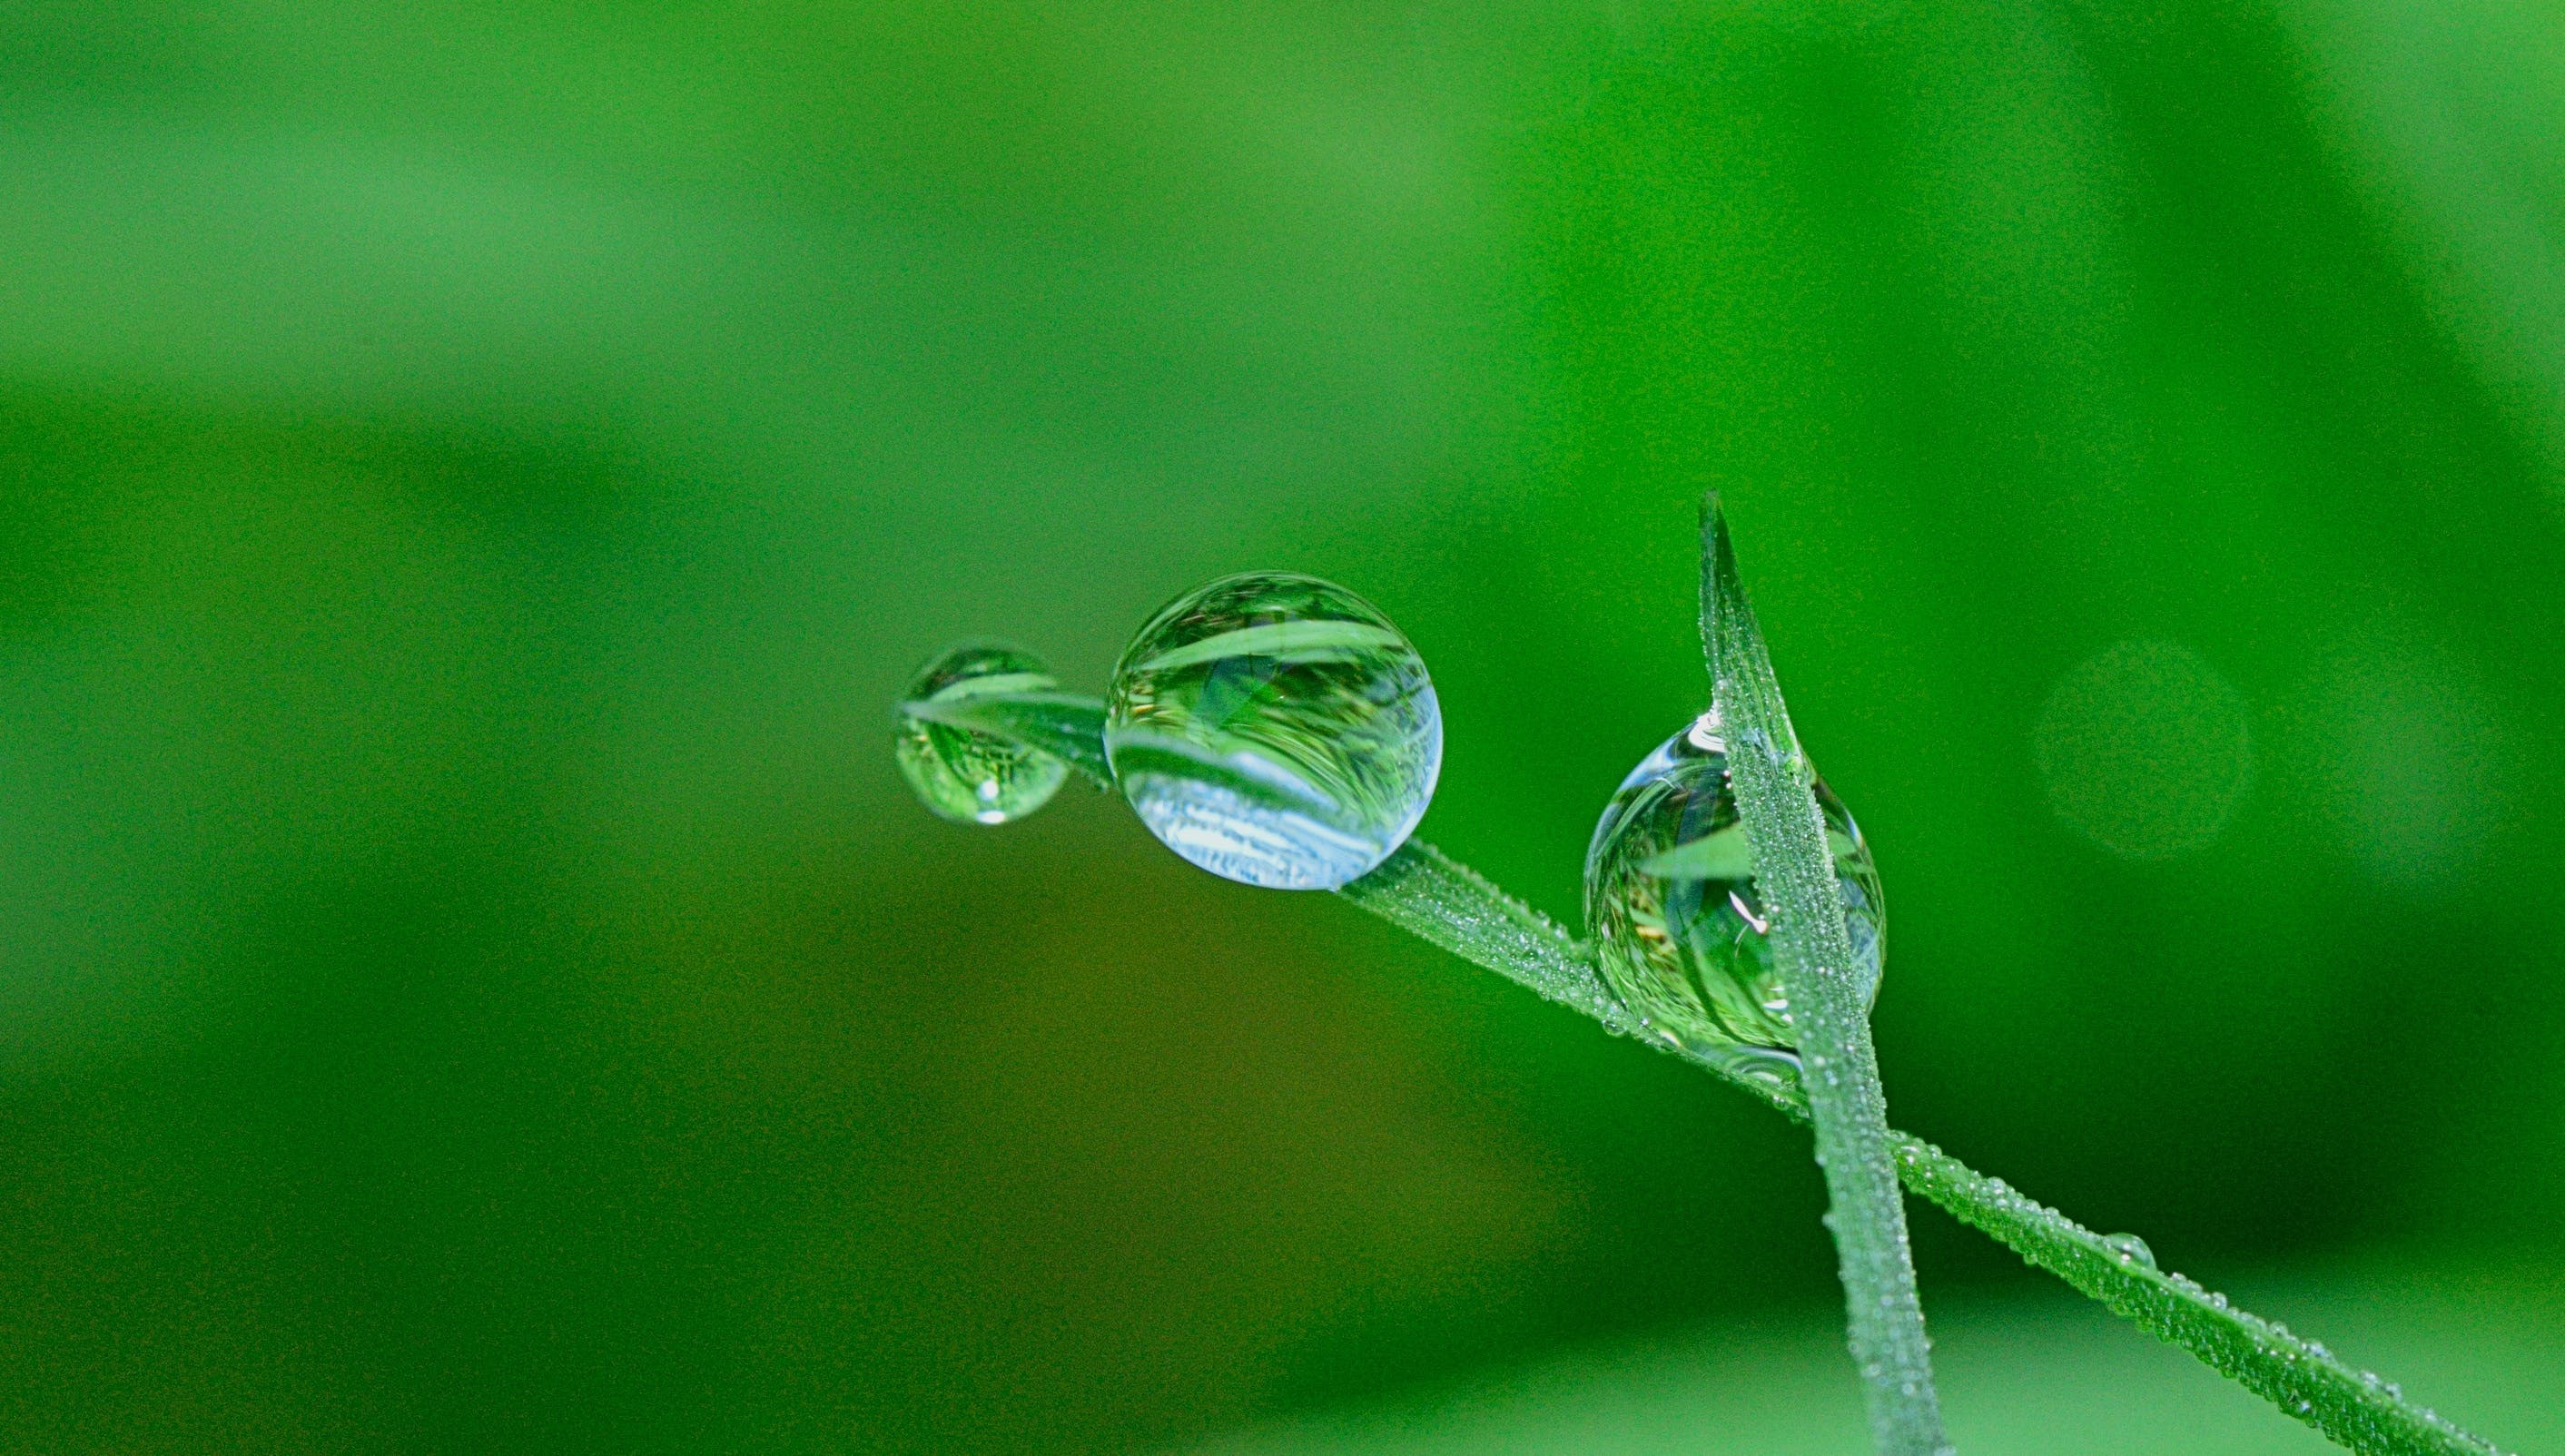 Green Grass and Water Droplet